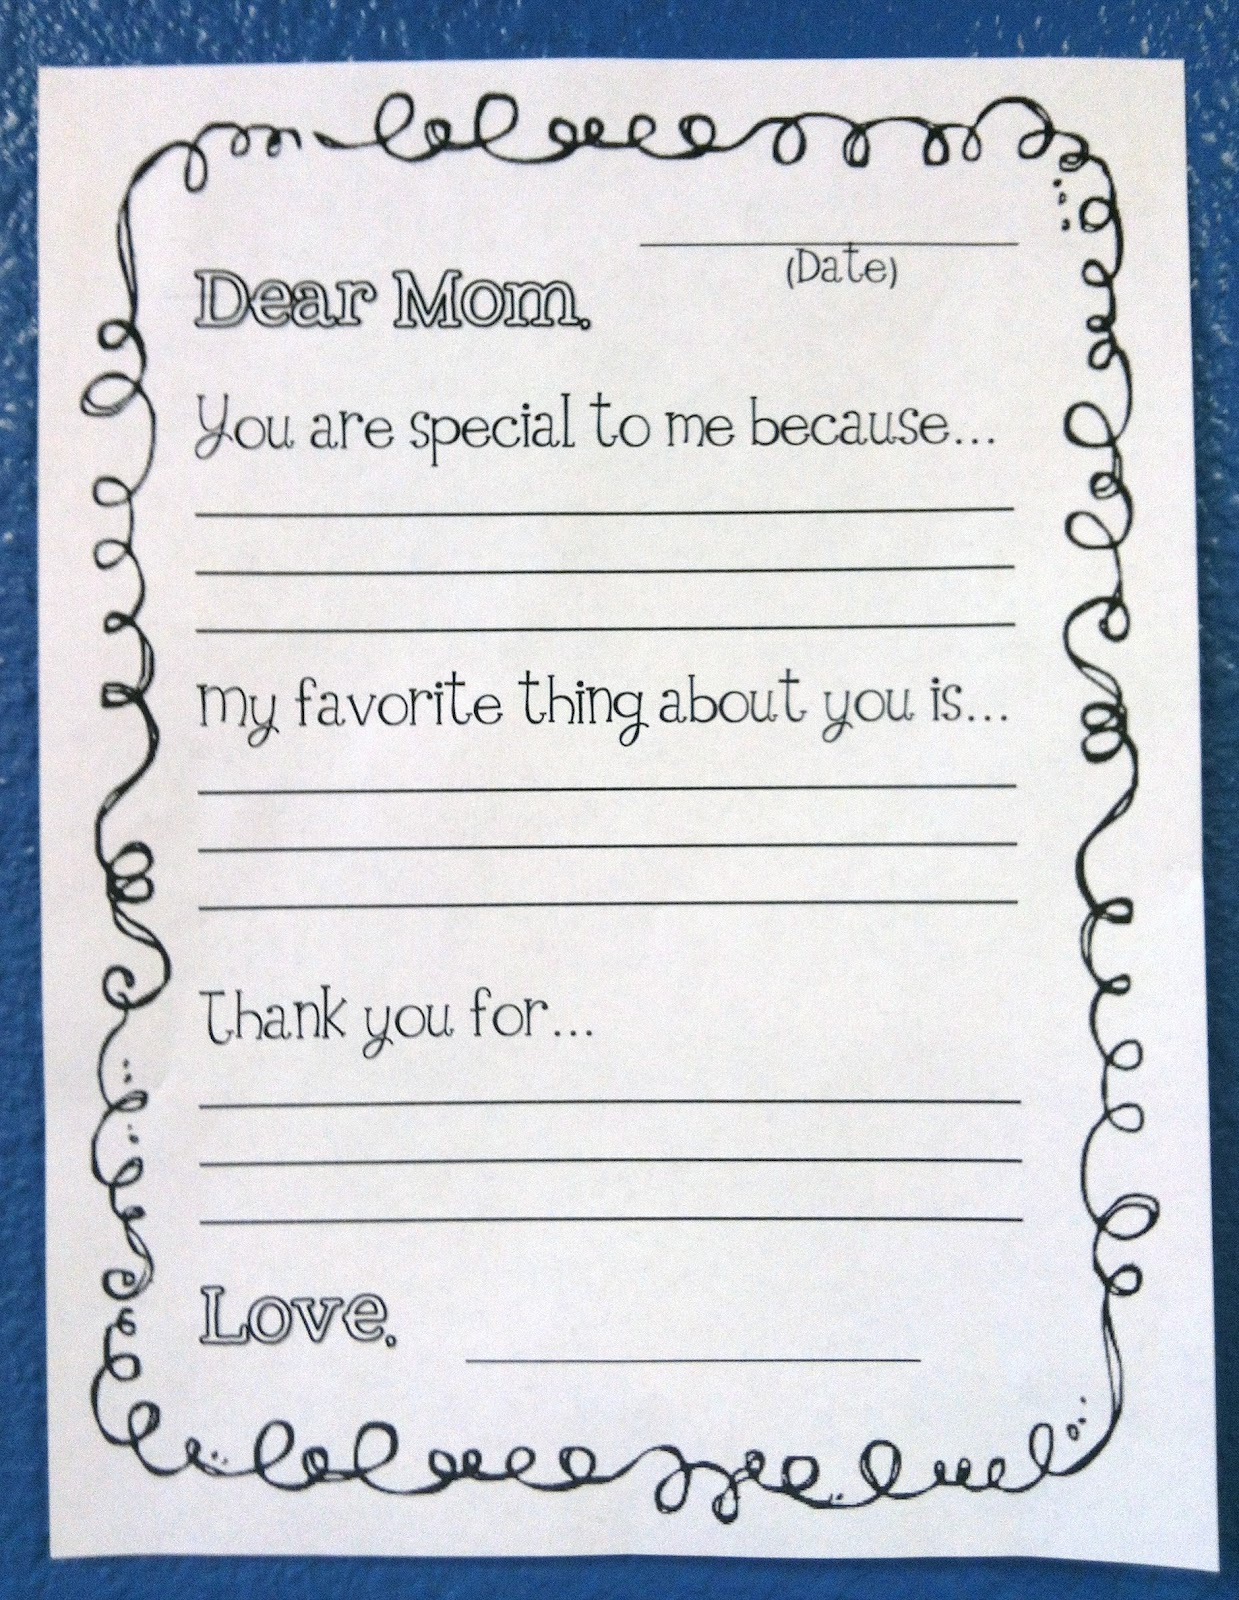 Mothers Day Letter In Spanish